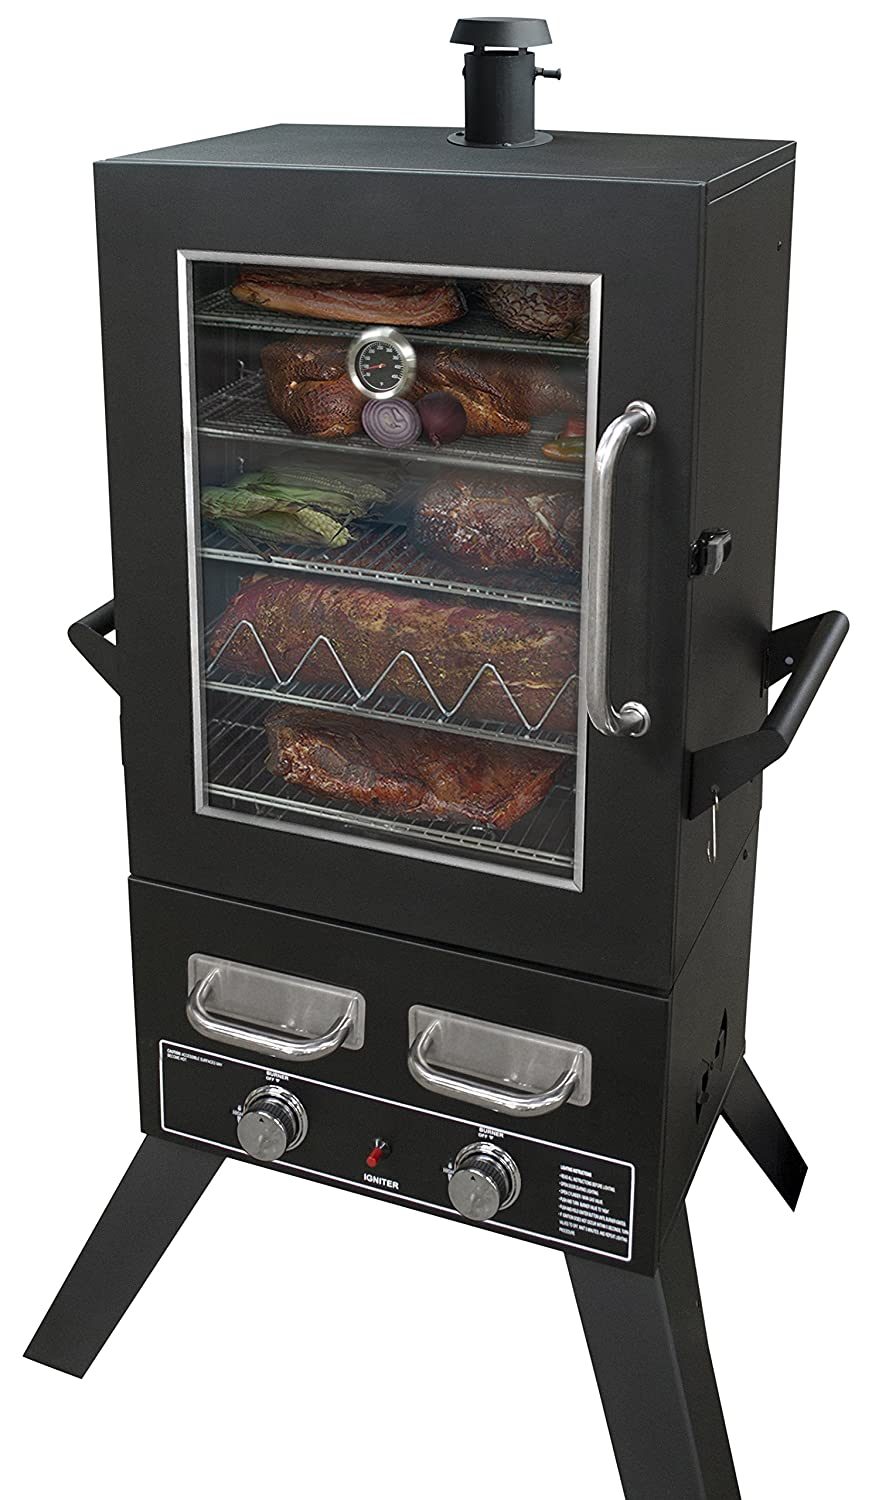 Best Propane, Electric and Charcoal Smokers Reviewed for your Kitchen 2